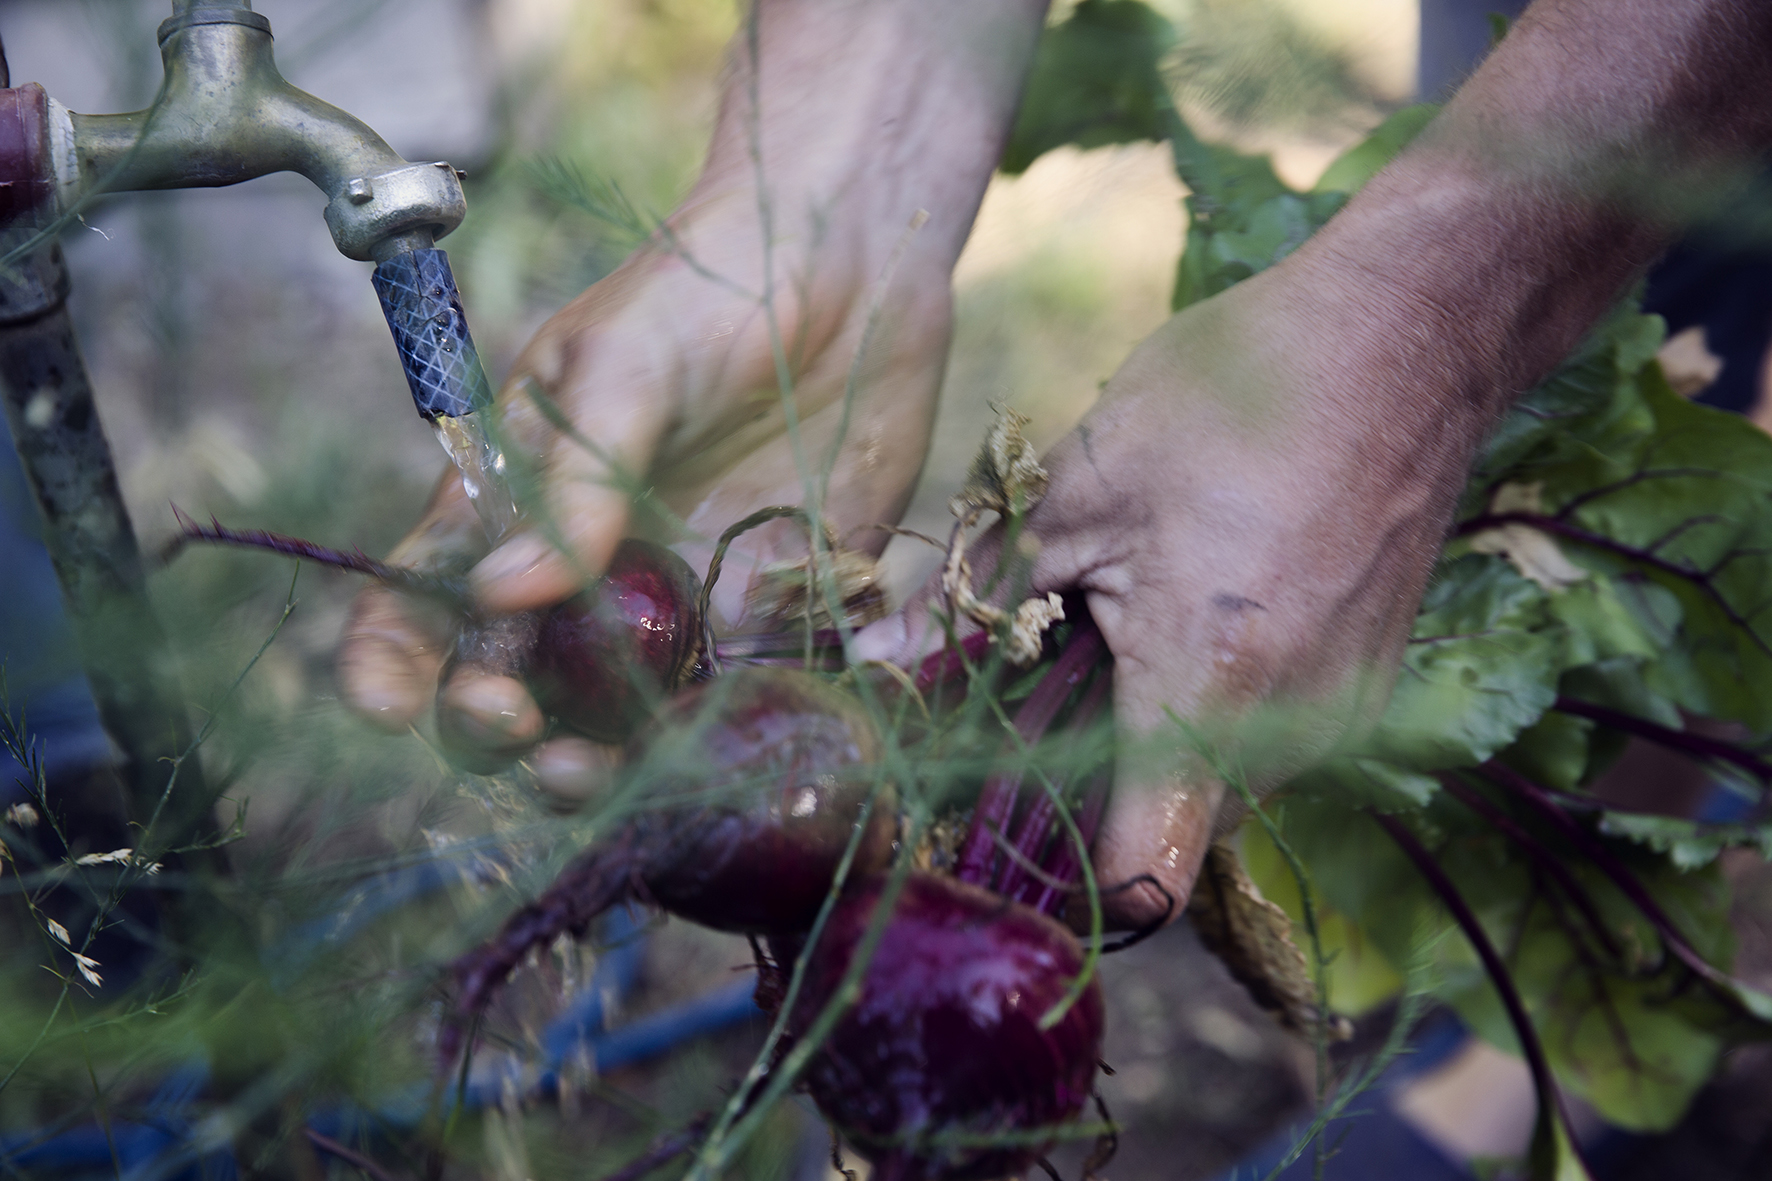 washing feshly picked beets in the gardens of Ranquilco